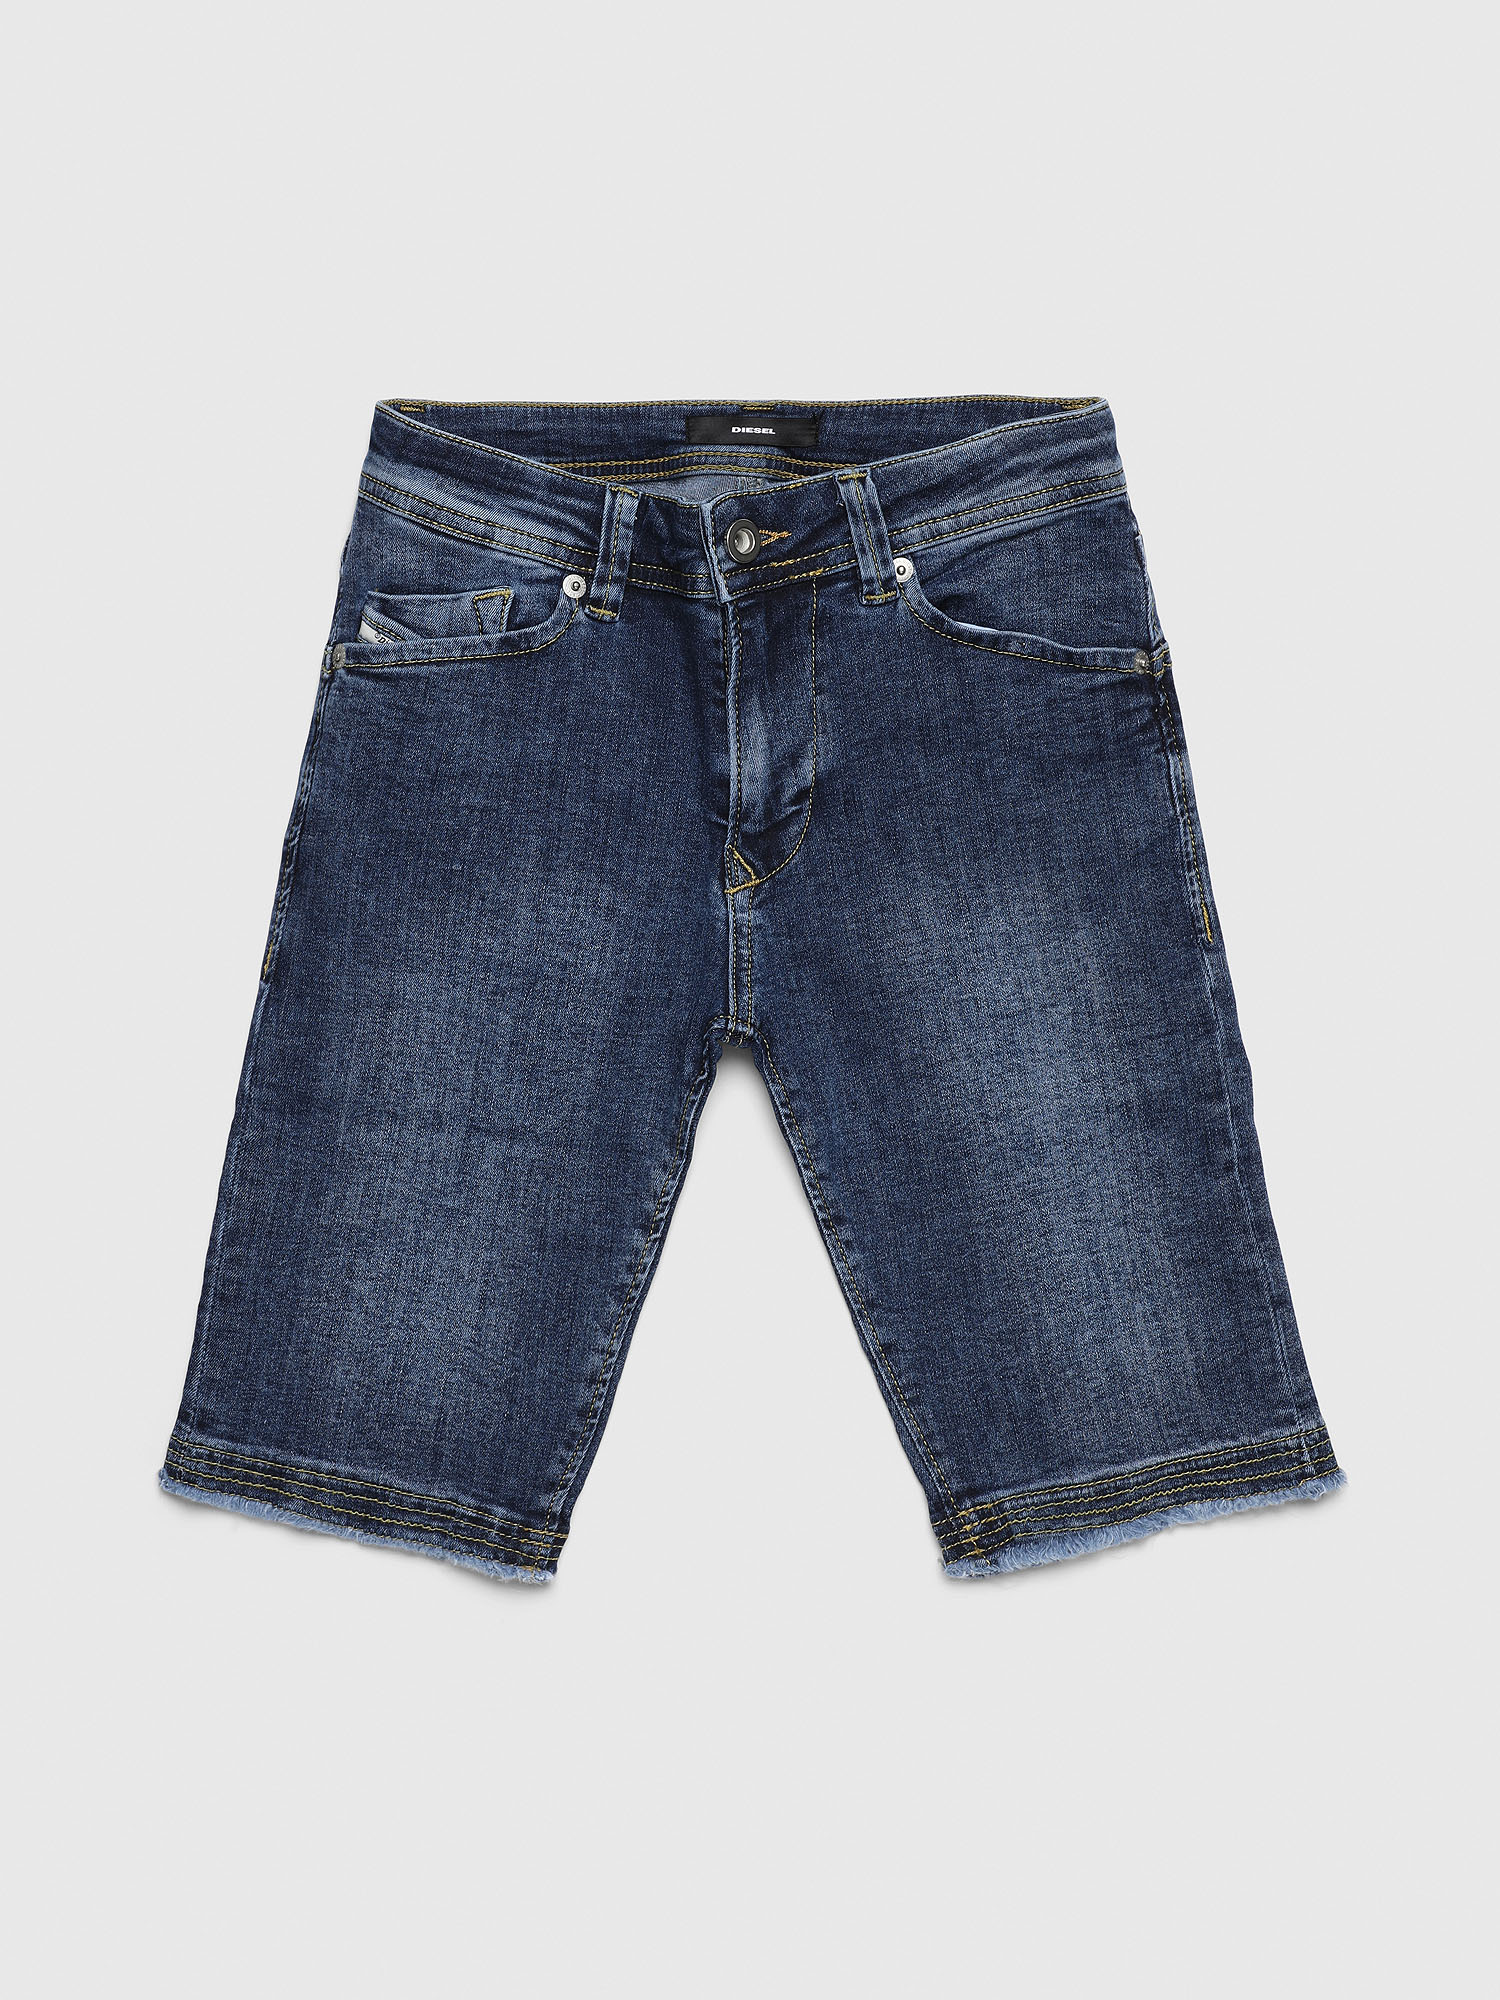 Diesel - DARRON-R-J SH-N, Medium blue - Shorts - Image 1